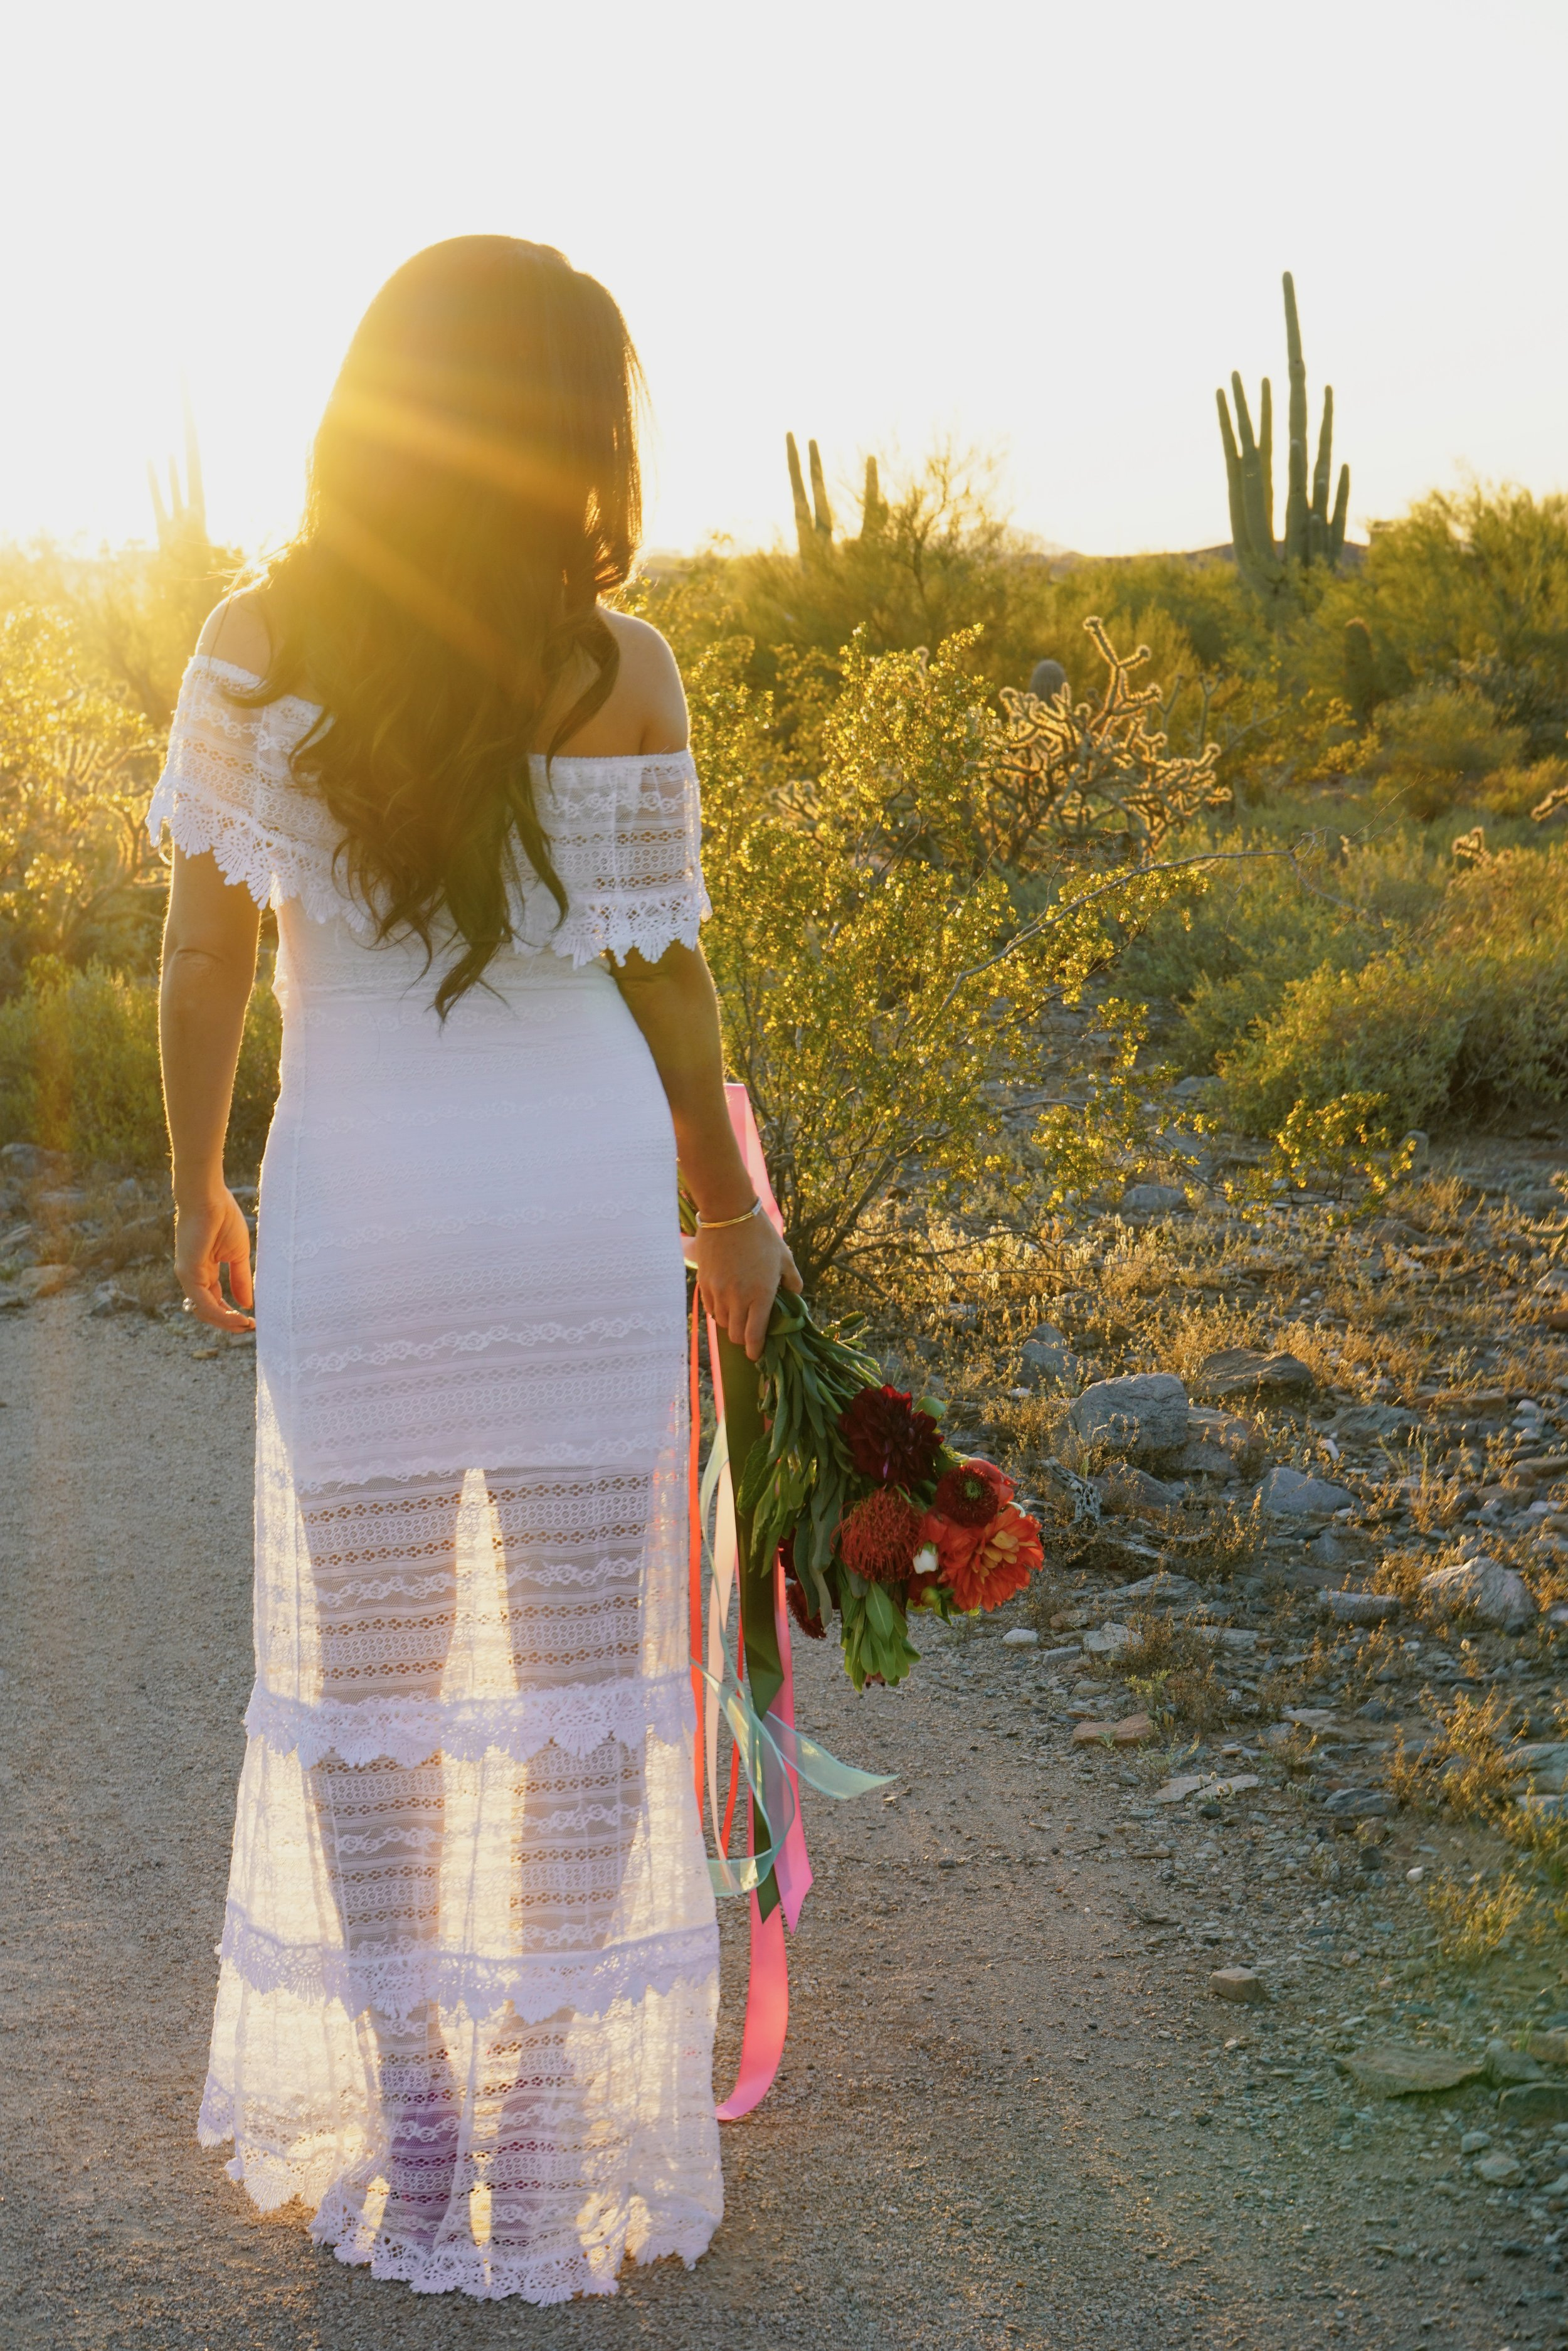 White See Through Gown on A Bride Holding Colorful Bouquet At Sunset in the Dessert